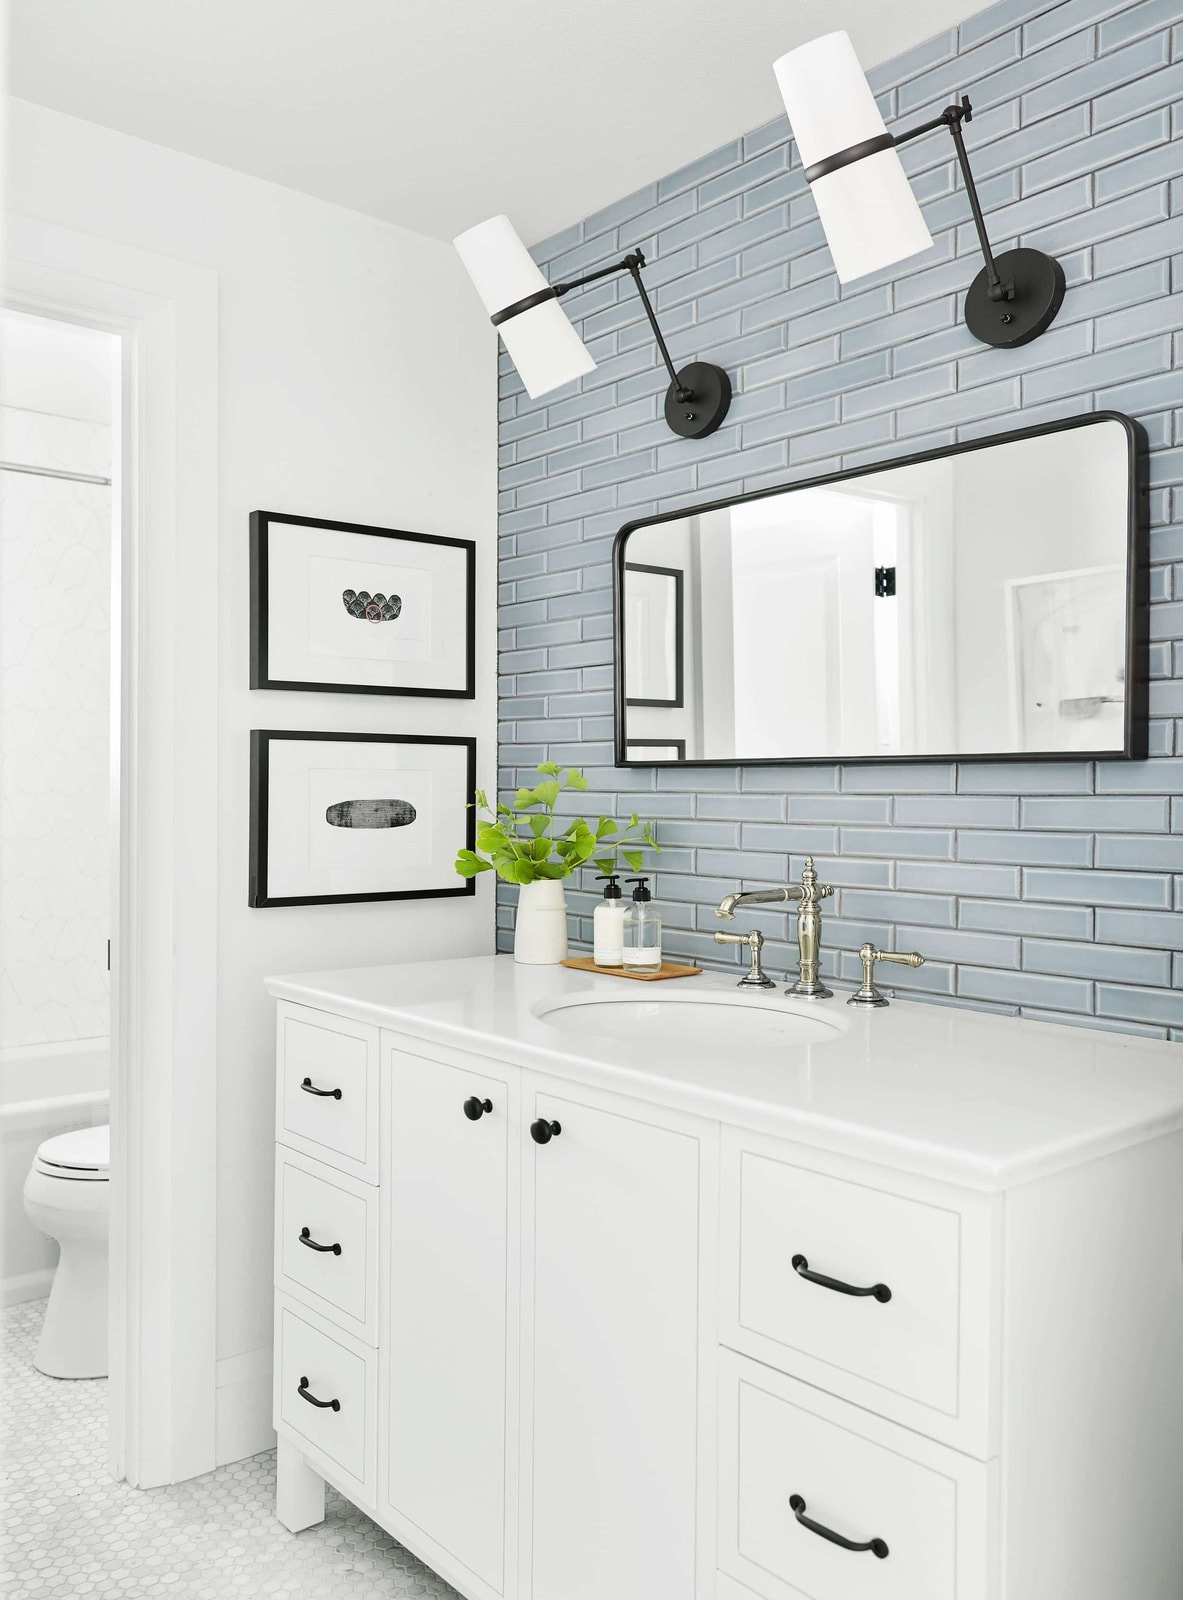 Modern farmhouse mixed metal bathroom with a black framed mirror and lighting with a polished nickel sink faucet- Maison de Pax